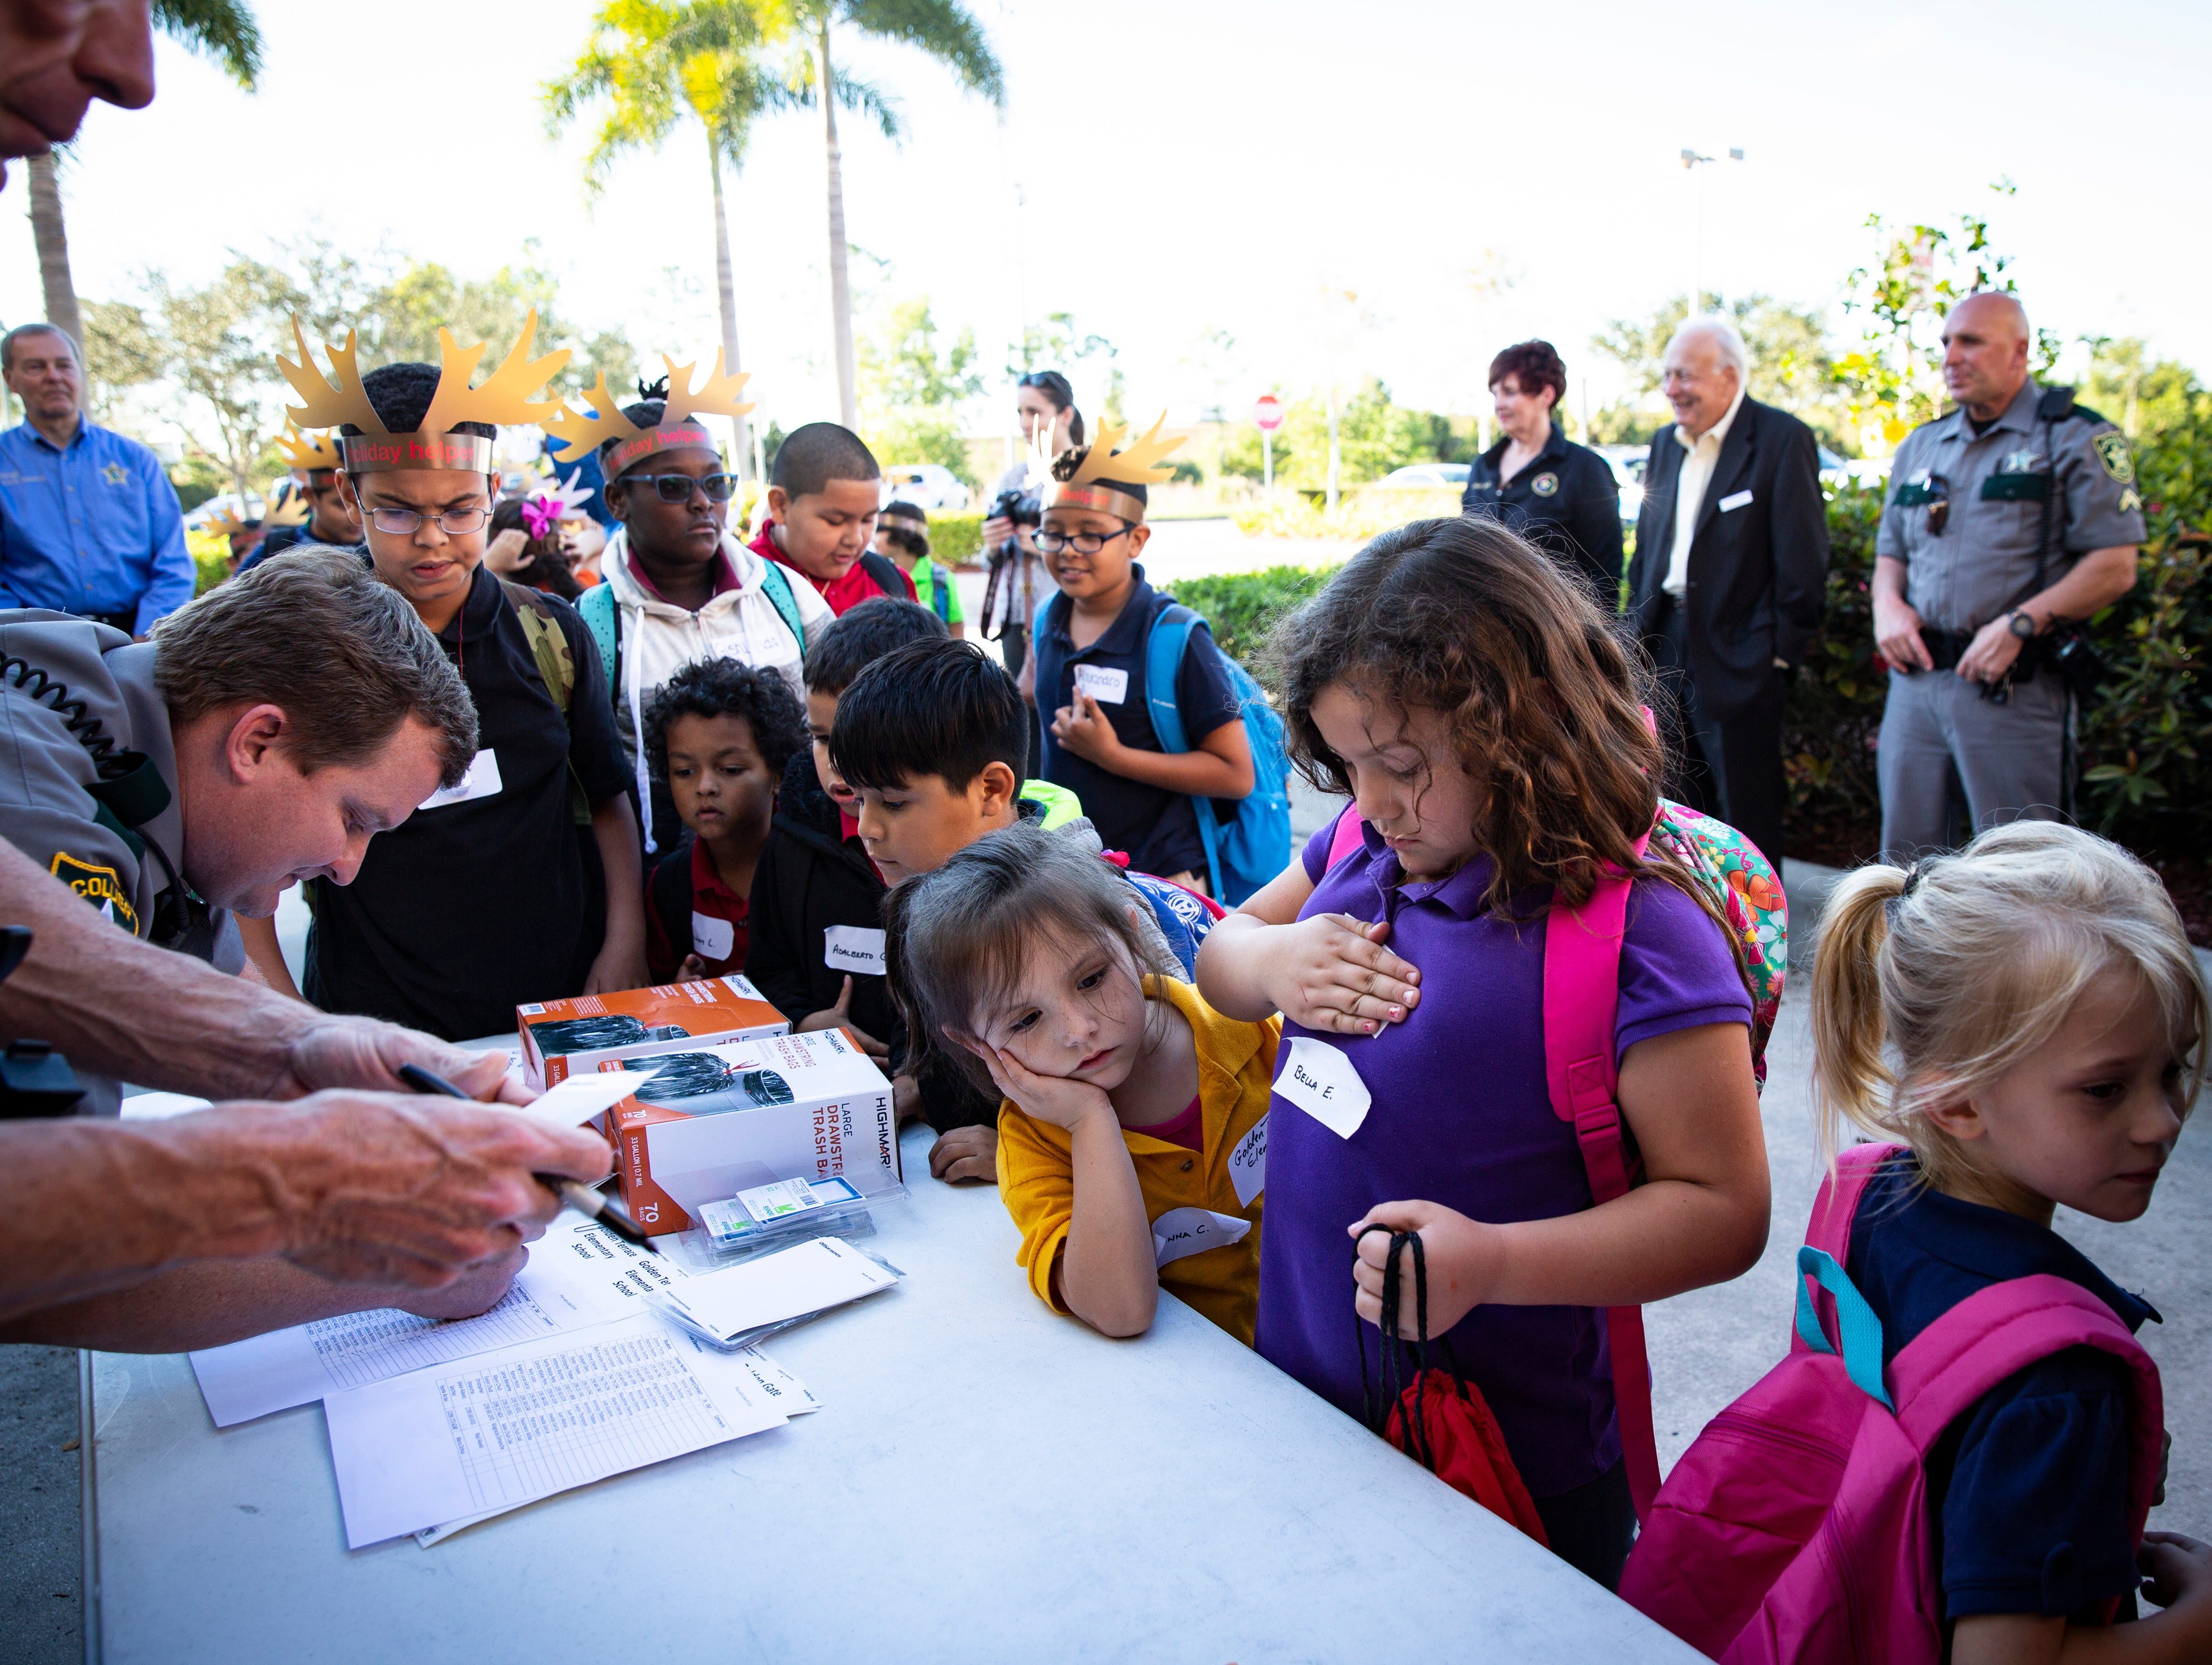 Children from four schools around the community, wait in line to get their name tags before heading to shop during the ÒShop With a SheriffÓ event at Target in North Naples on Tuesday, December 18, 2018. The Jewish Federation of Greater Naples partnered with the Collier County SheriffÕs Office for the fourth year in a row to help 78 children and their families during the holiday season.